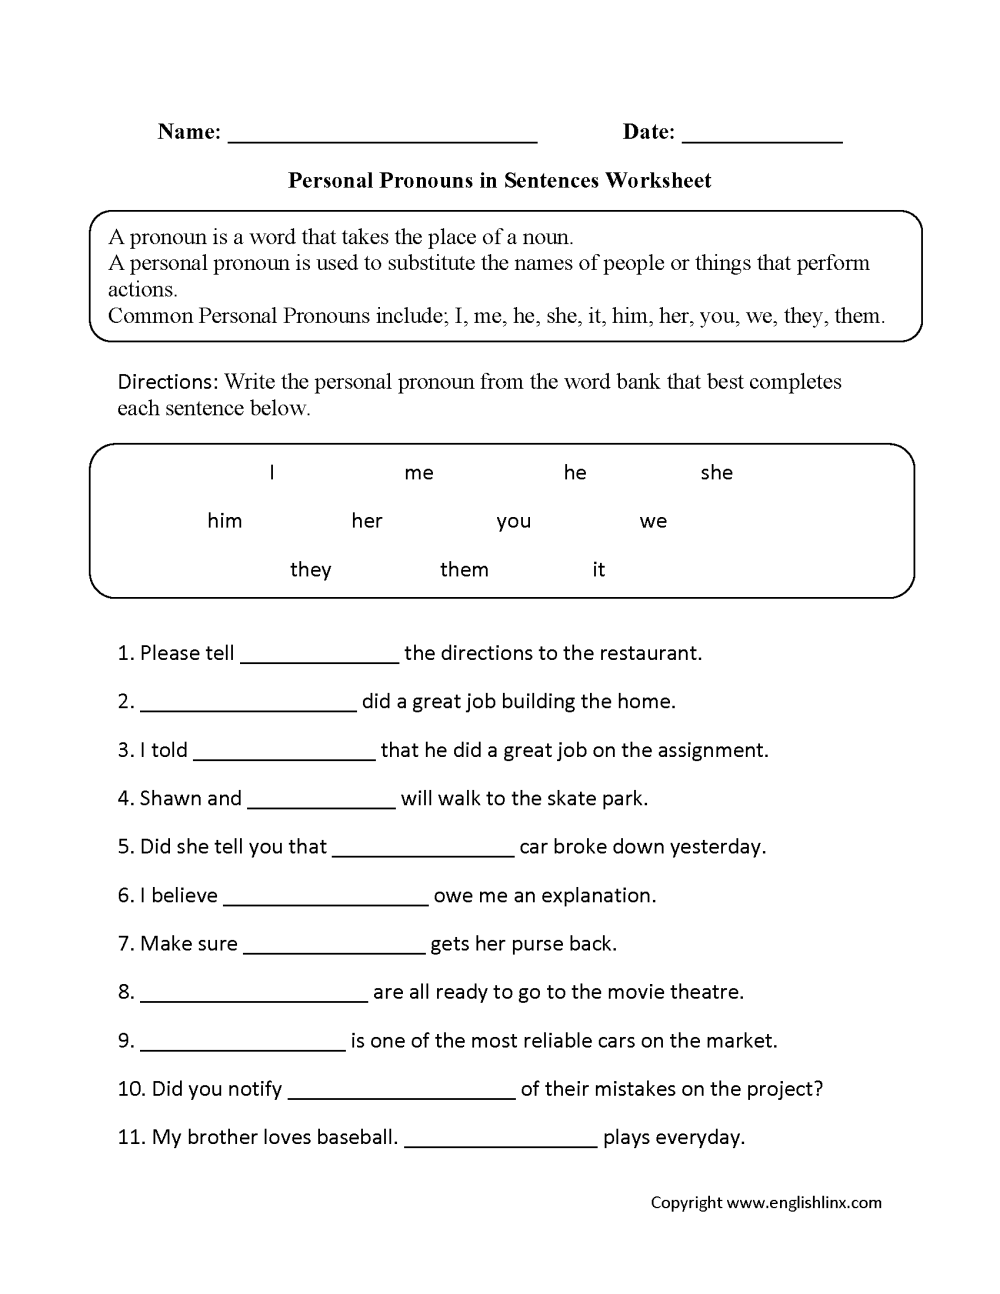 medium resolution of Pronouns Worksheets   Personal Pronouns Worksheets